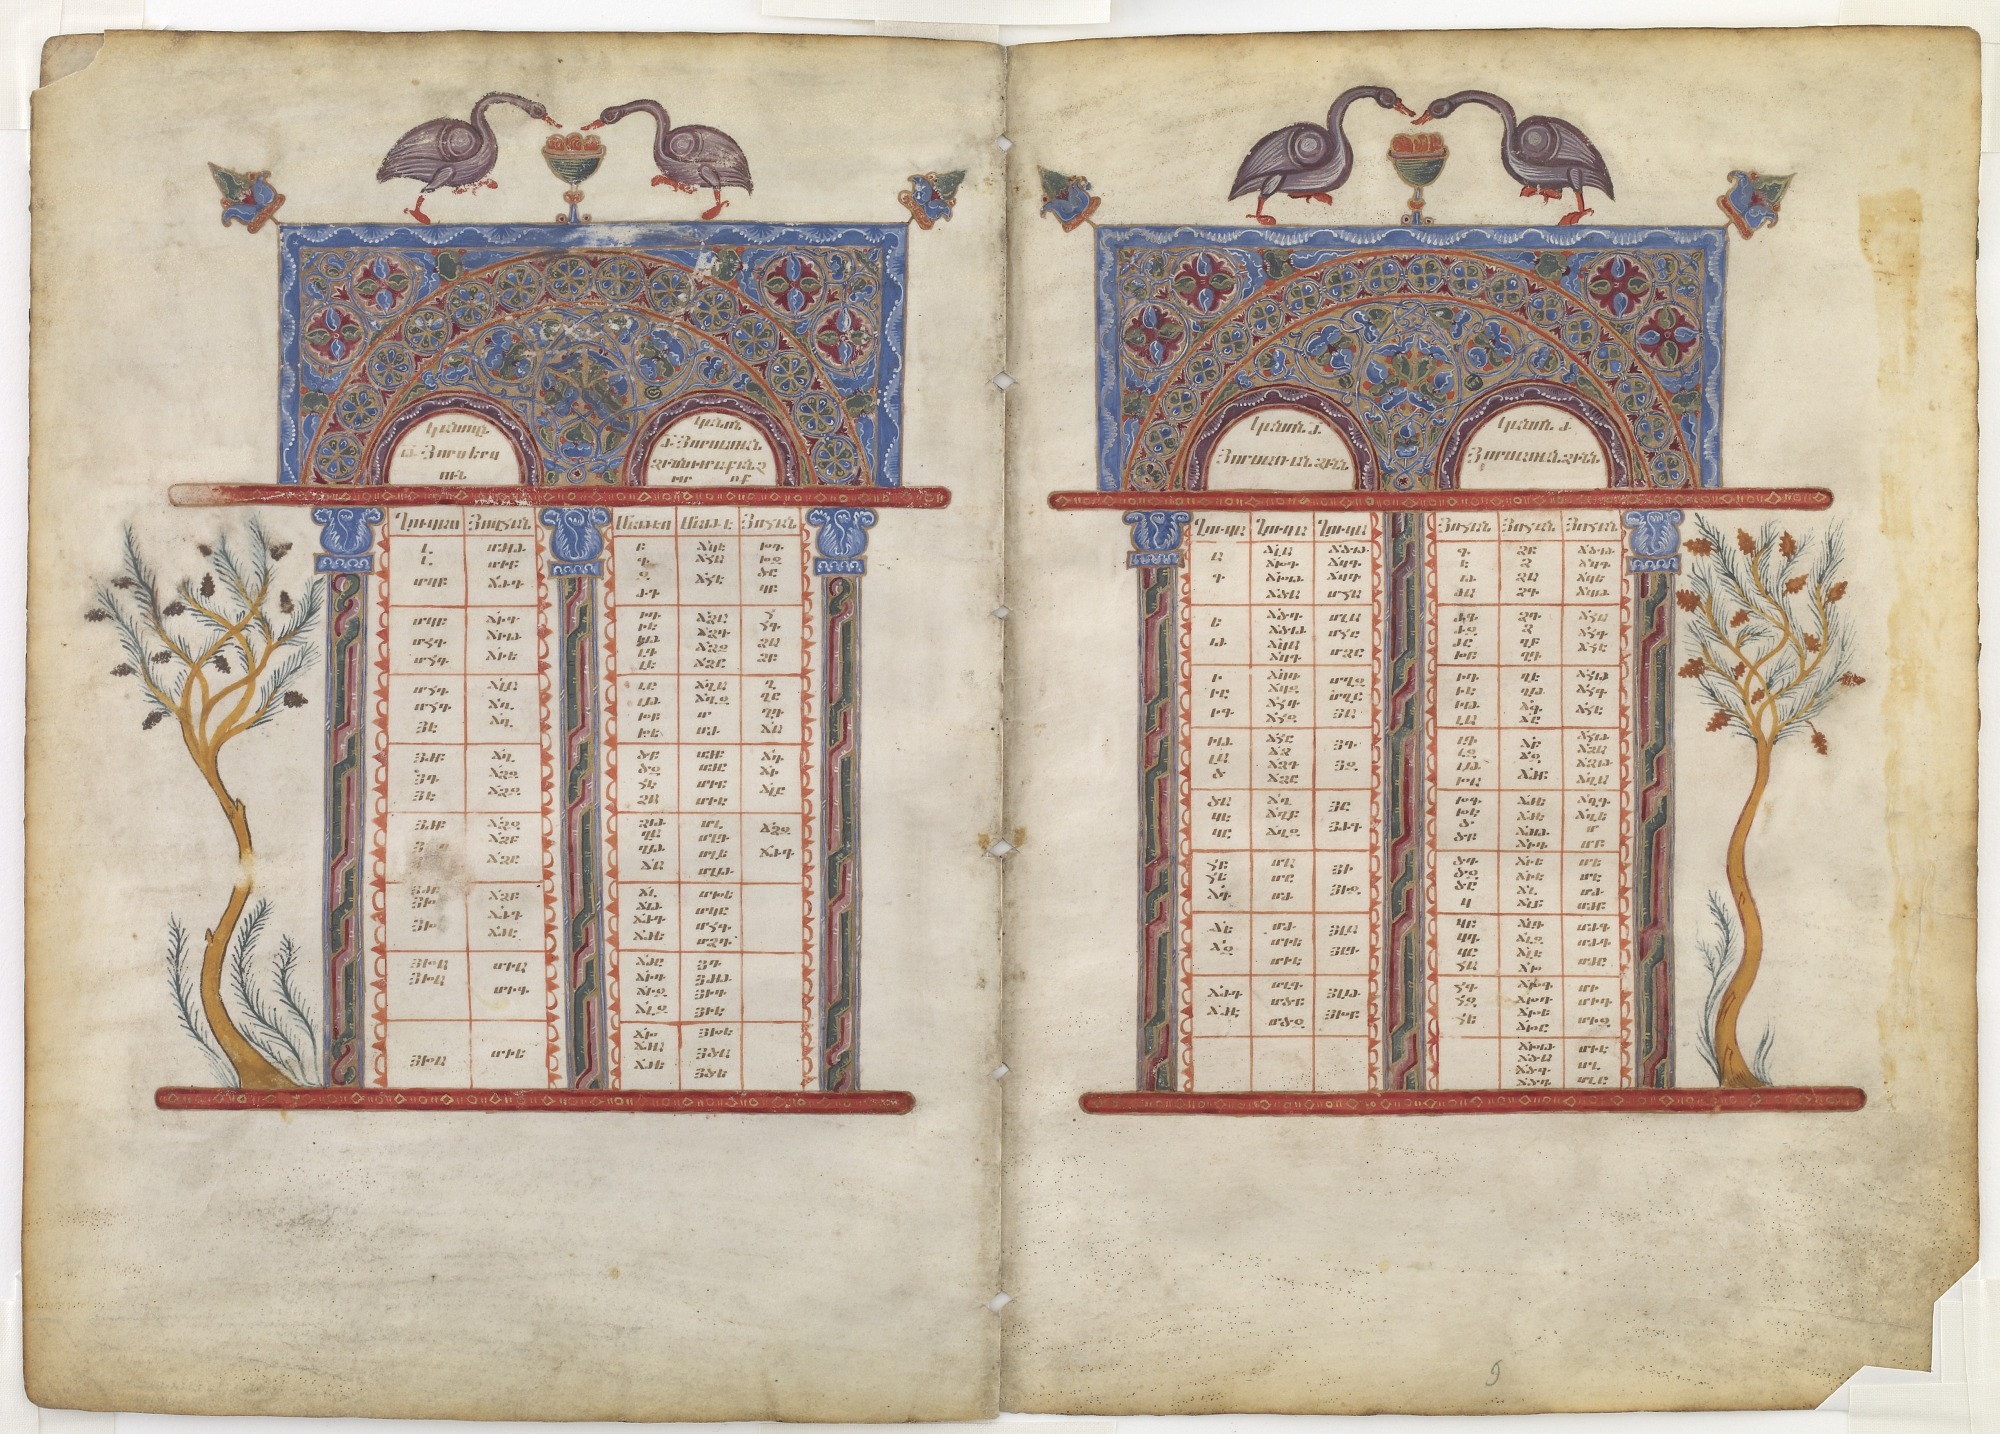 folios 8-9: Copy of The Gospel according to the four Evangelists